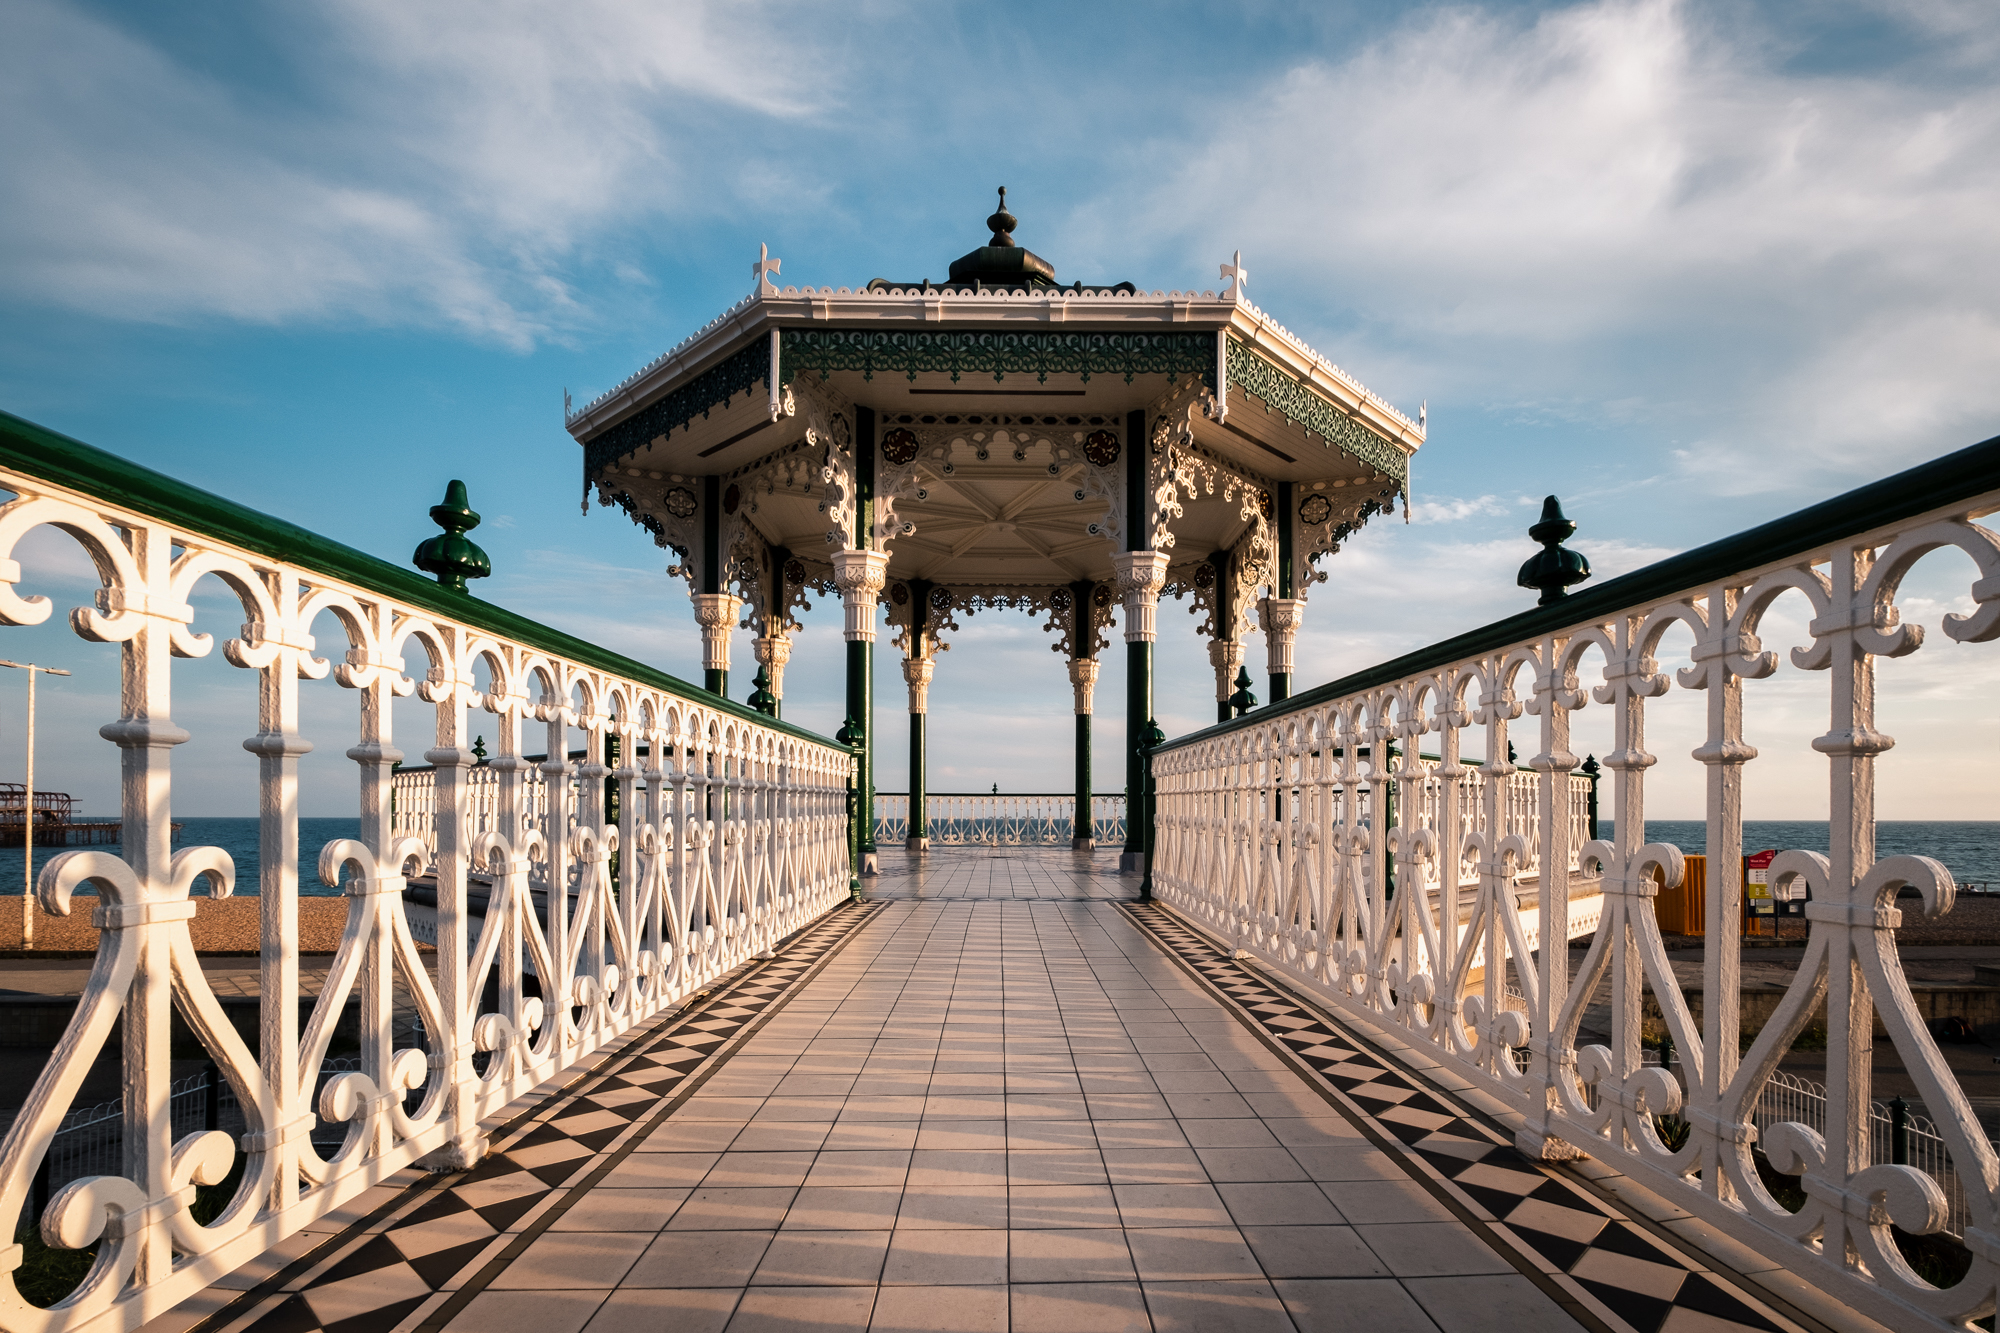 The Bandstand | Fujifilm X-T2 | XF10-24mm | 10mm | 1/110th second | f/11 | ISO200